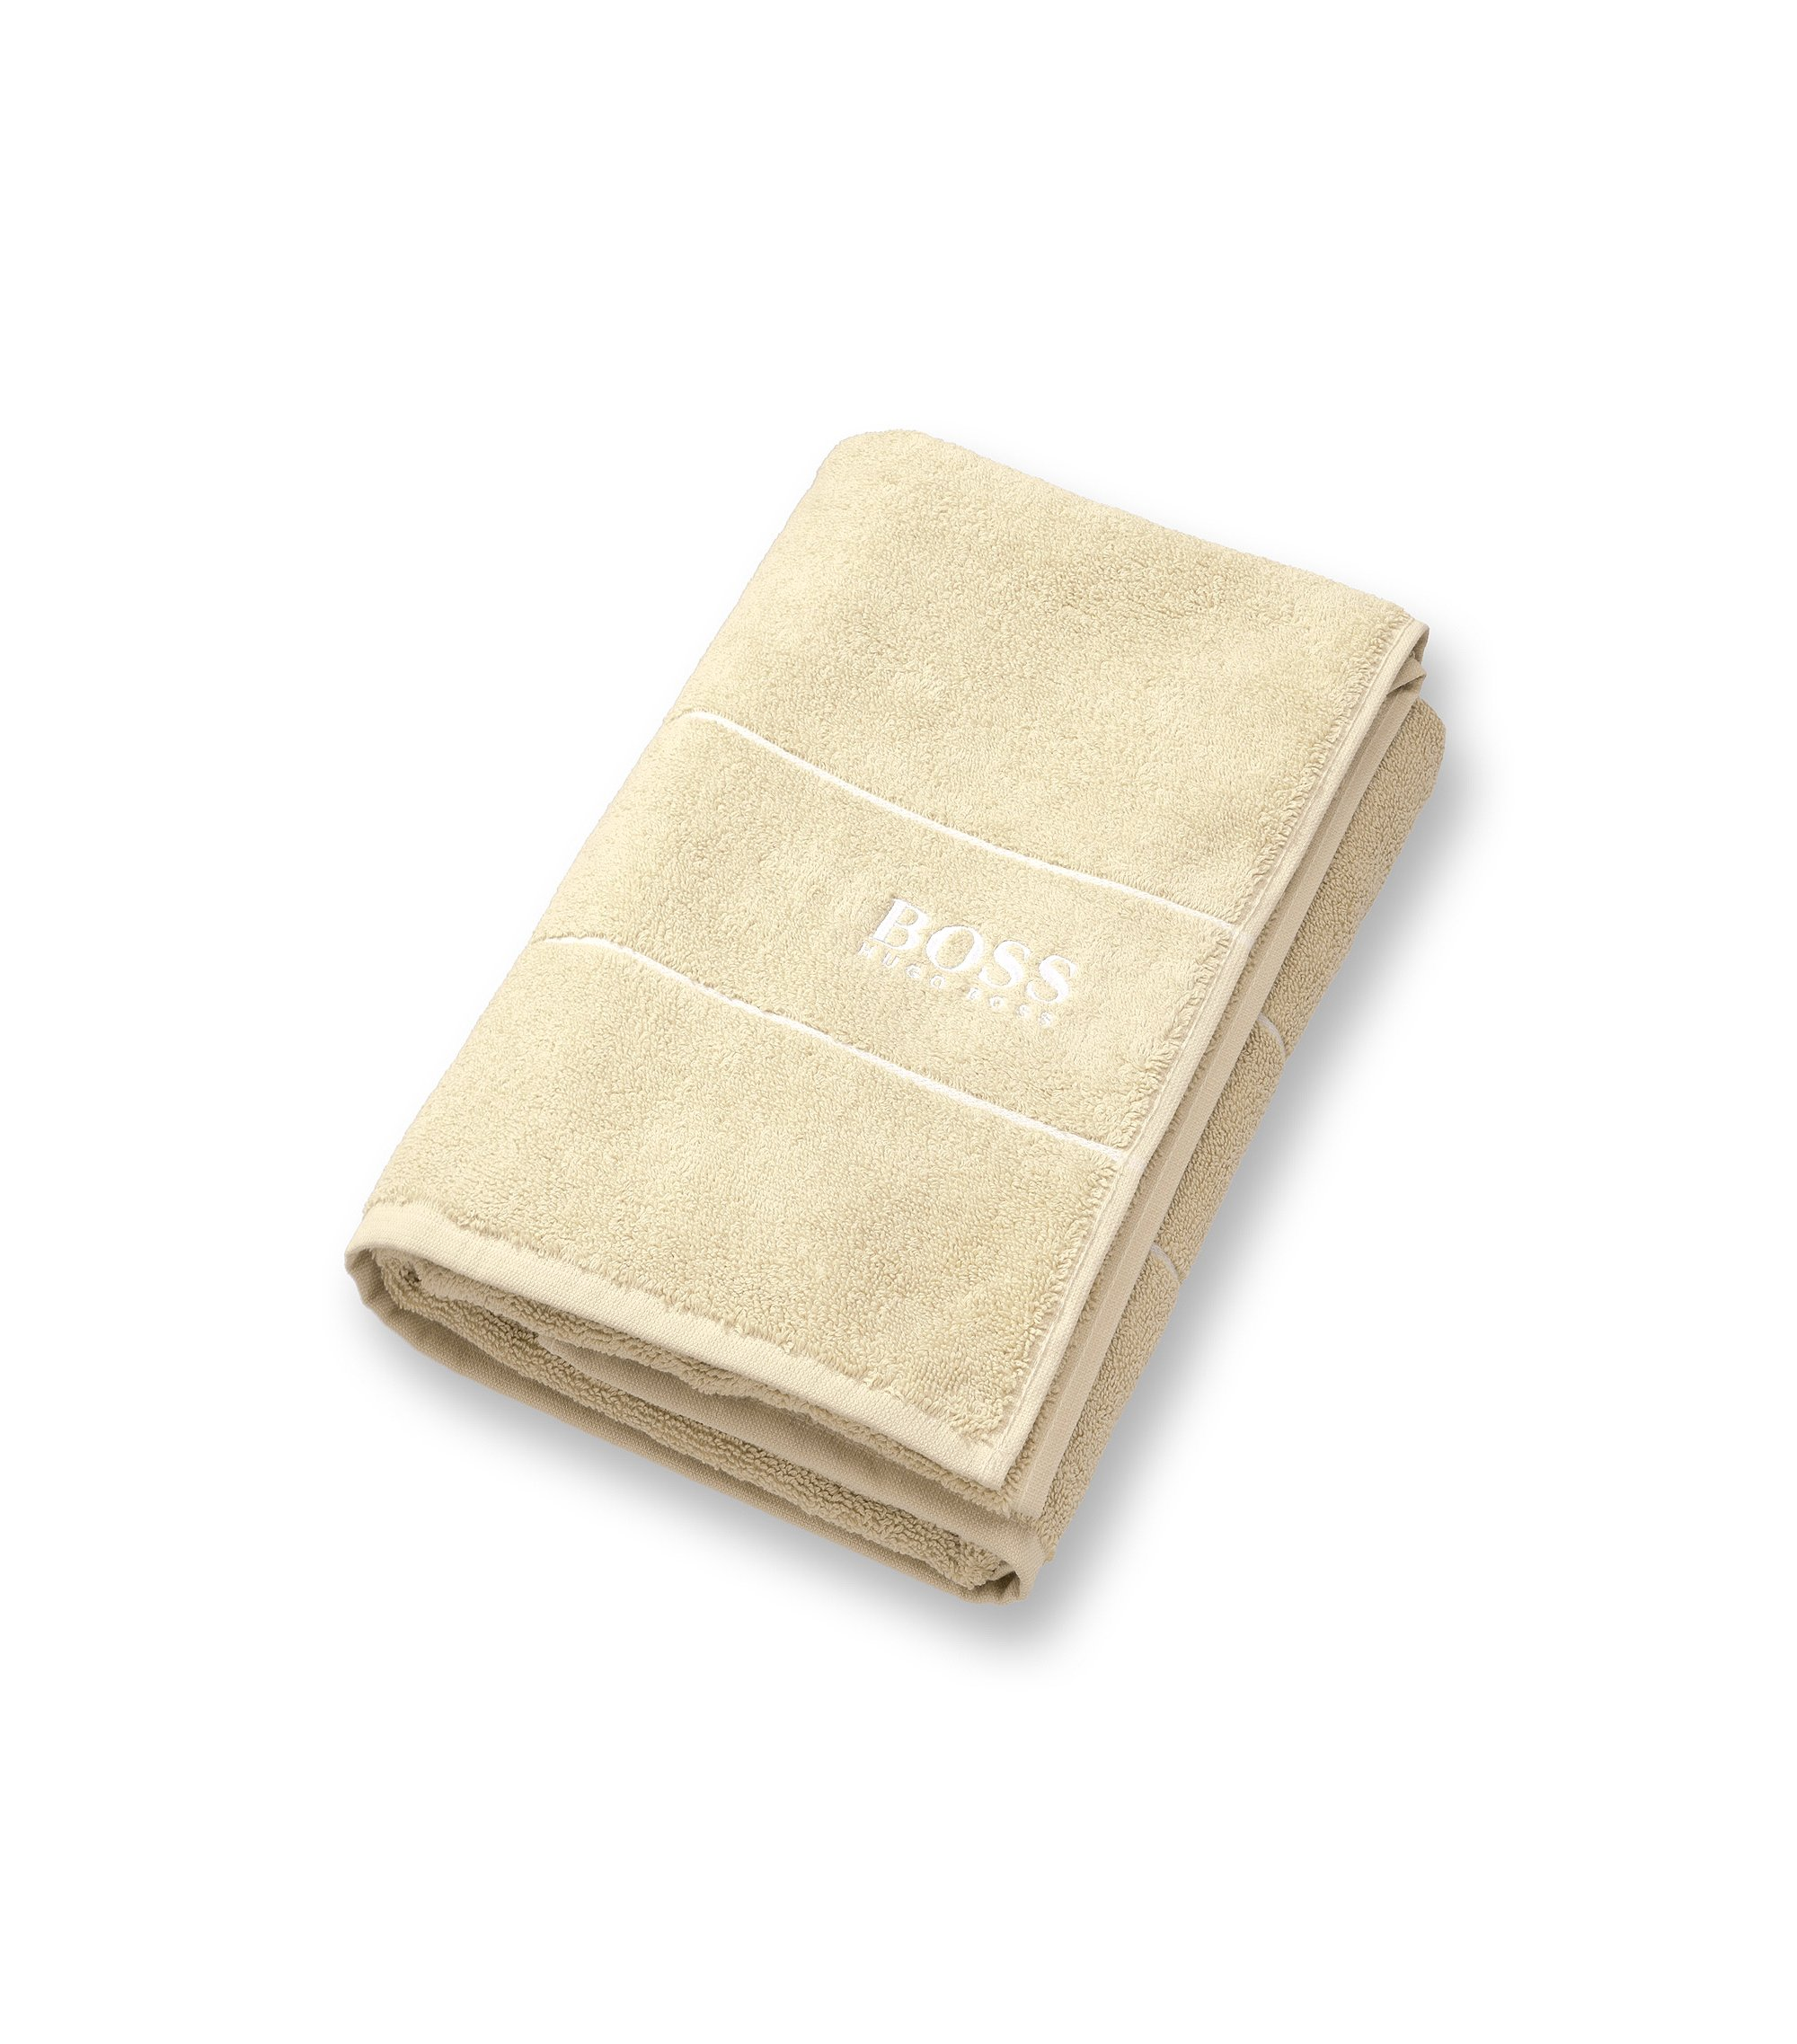 Finest Egyptian cotton bath towel with logo border, Light Beige